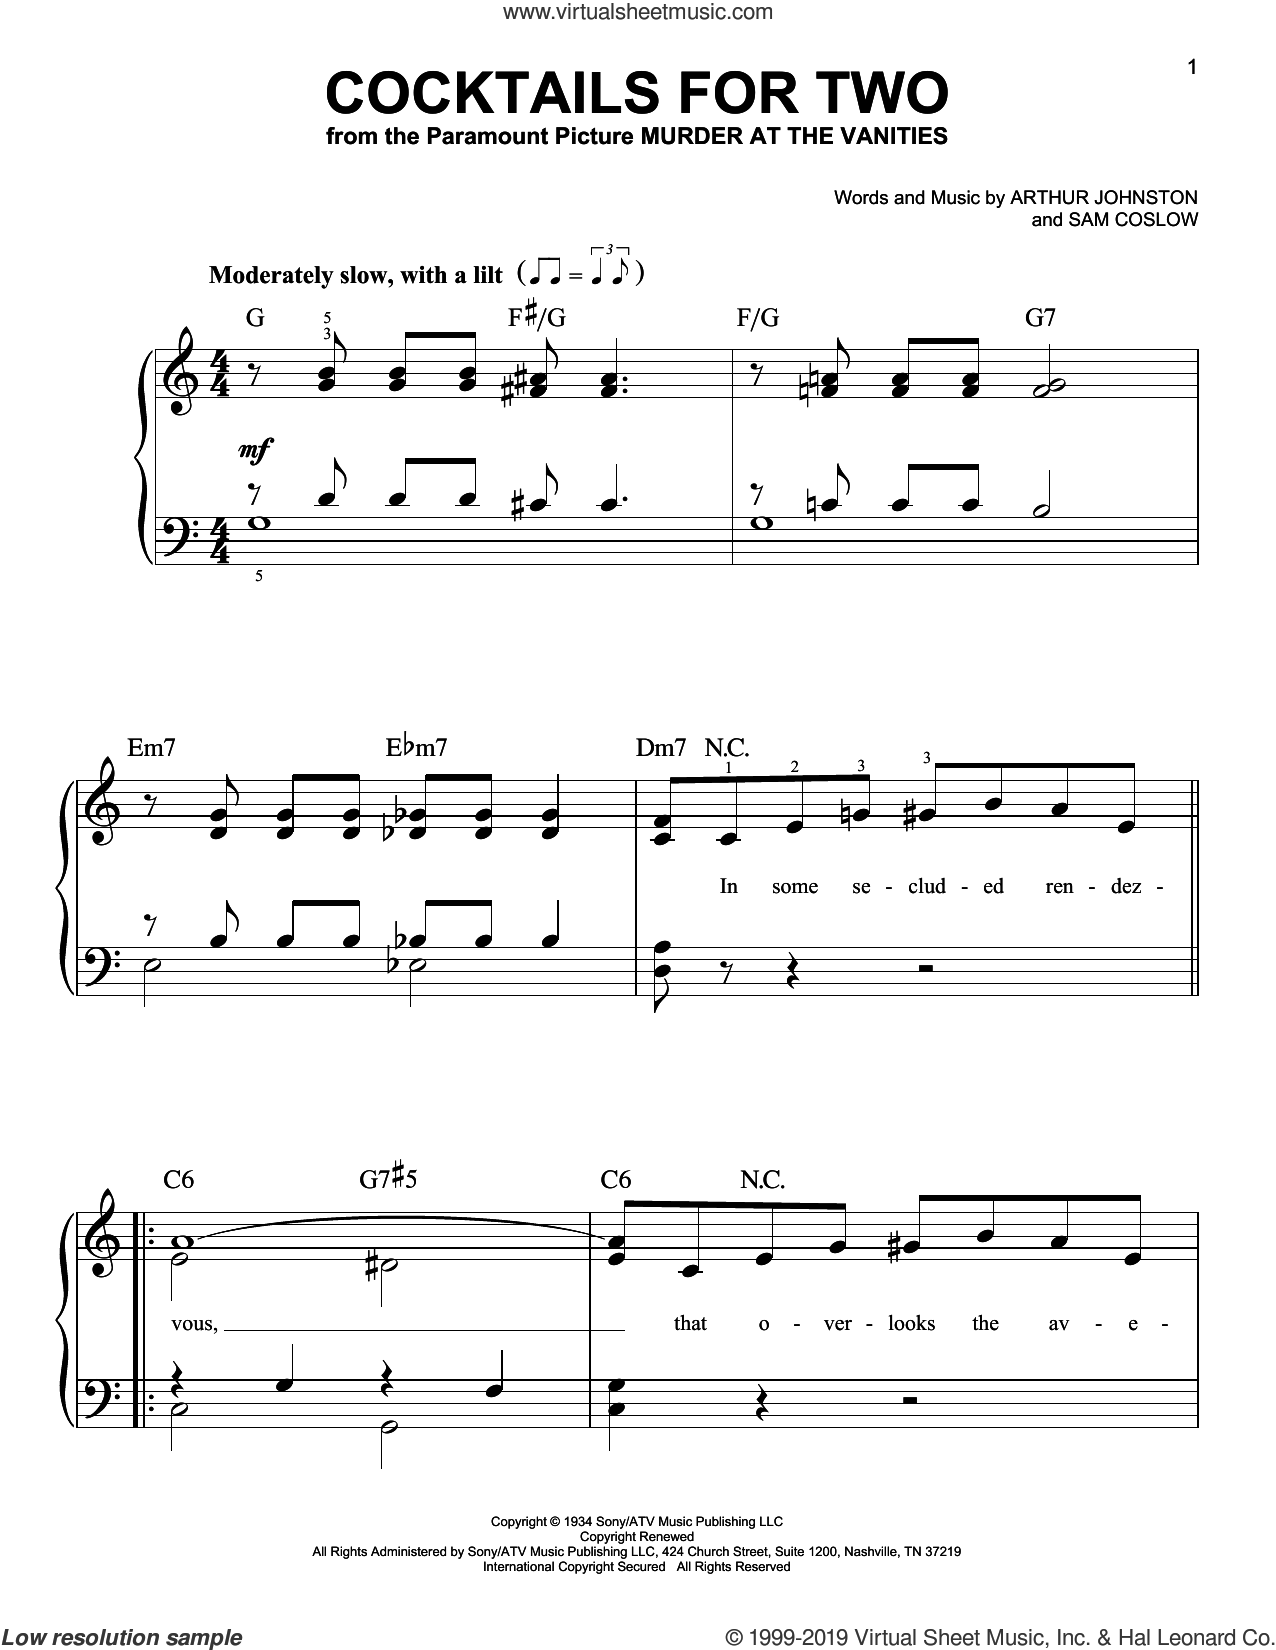 Cocktails For Two sheet music for piano solo by Arthur Johnston, Carl Brisson, Miriam Hopkins, Spike Jones & The City Slickers and Sam Coslow, easy skill level